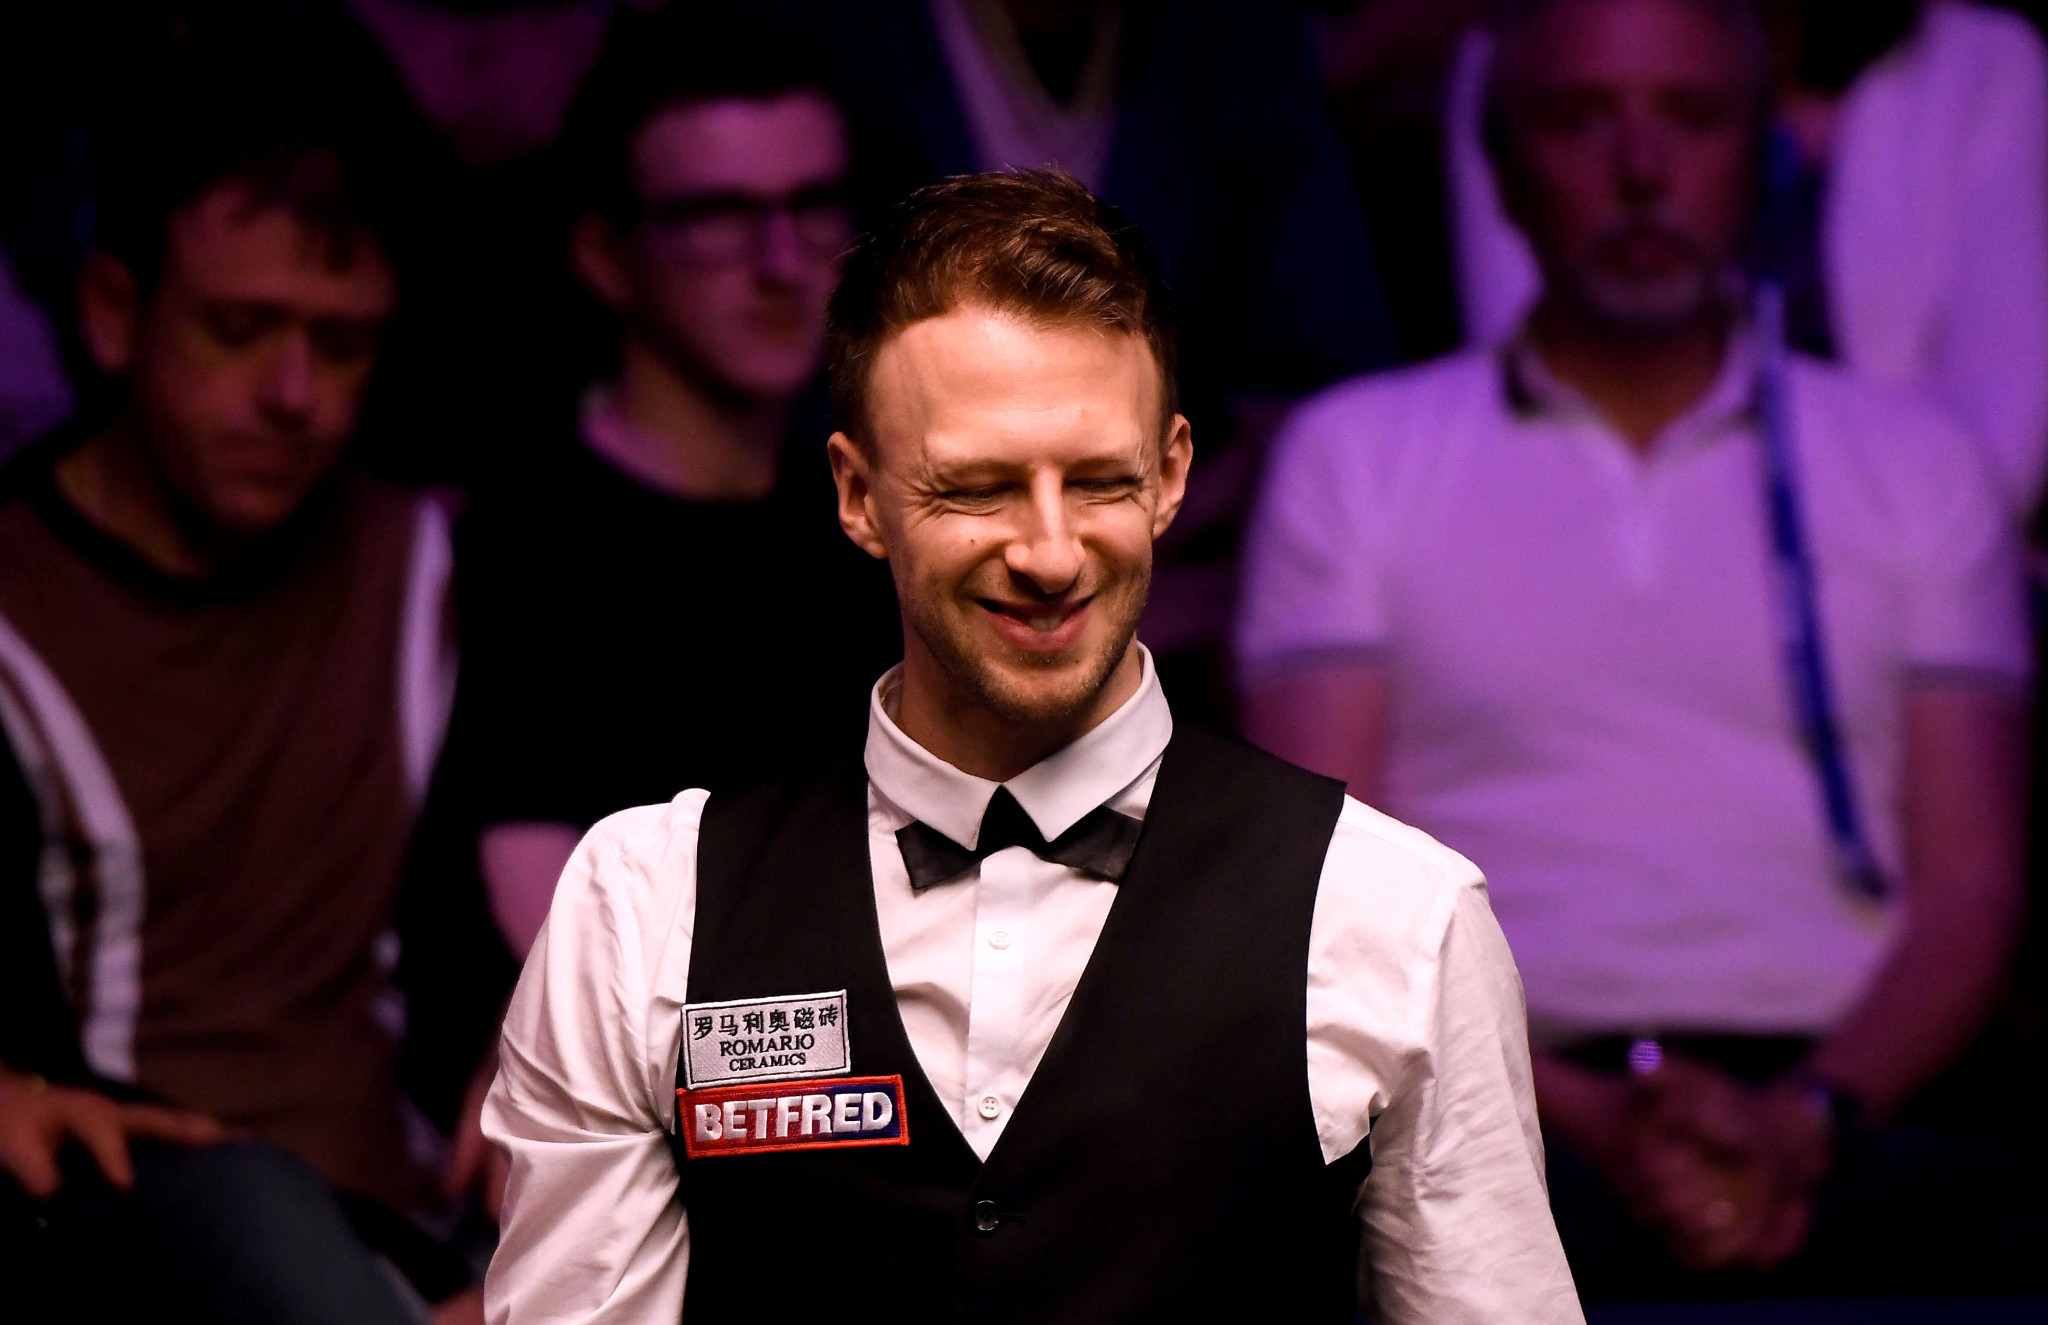 Trump avoids upset  at World Snooker Championships - but Allen knocked out